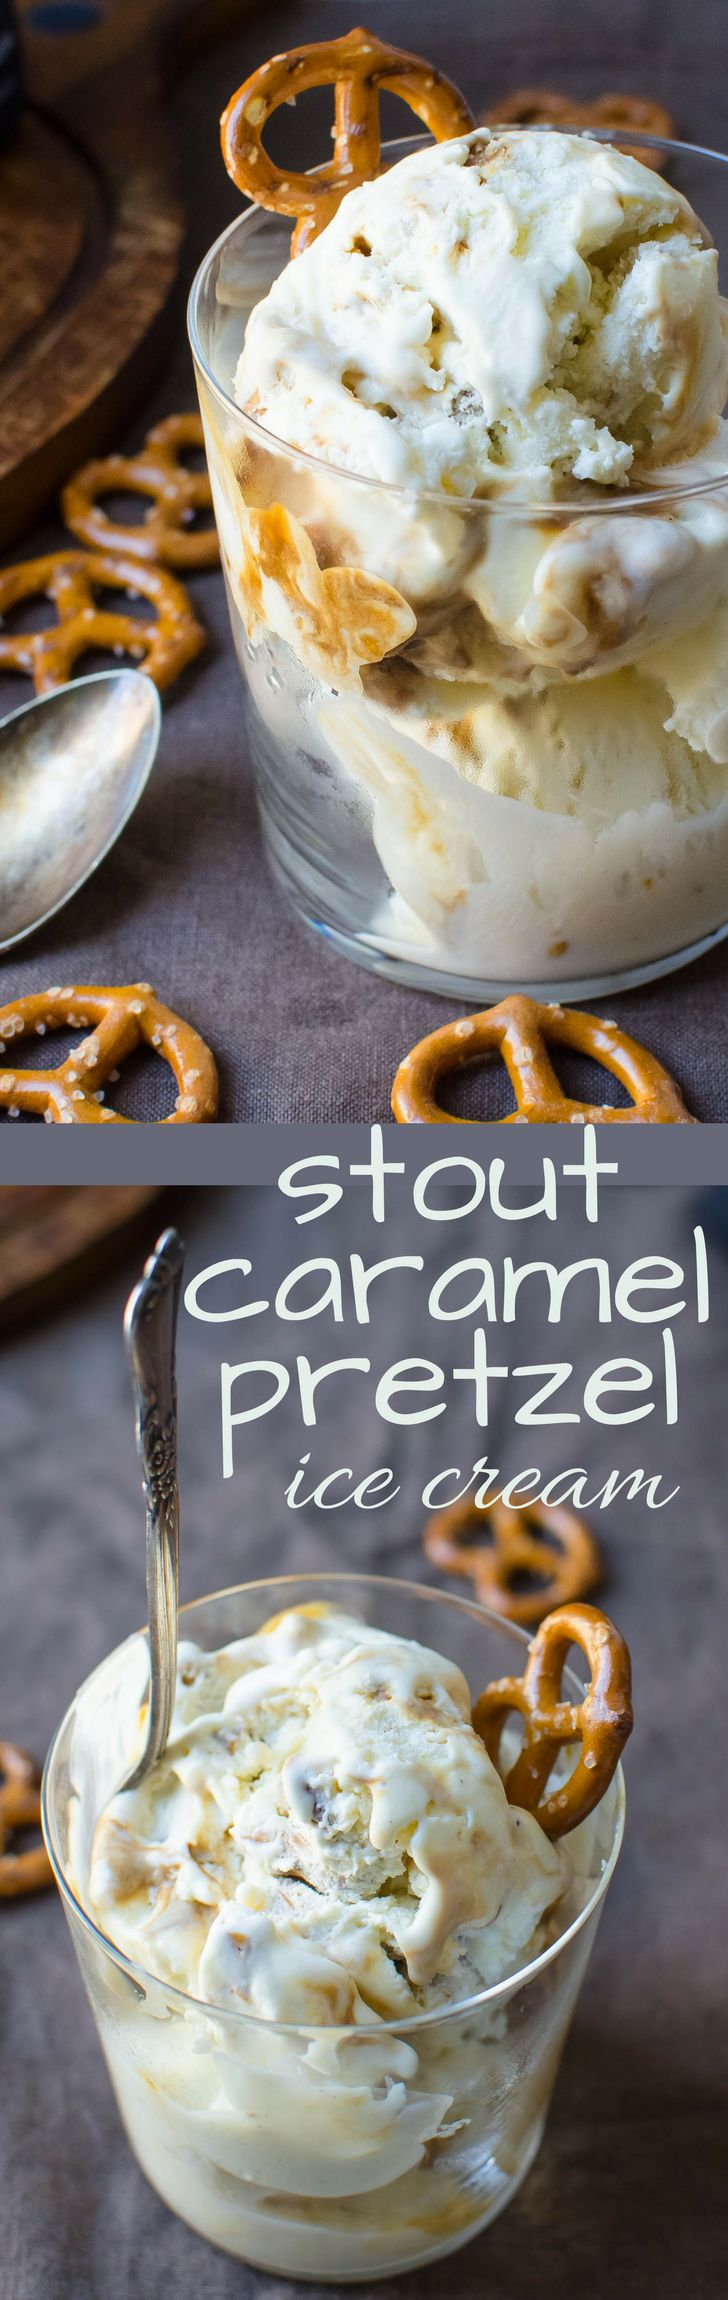 This Irish Stout sweet treat made with Guinness is rich and creamy! Stout Caramel Pretzel Ice Cream is bar foods answer to dessert! #icecream #guinness #stout #caramelsauce #pretzels #homemadeicecream #stpattysday #stpattysdessert #stpatricksday #dessert